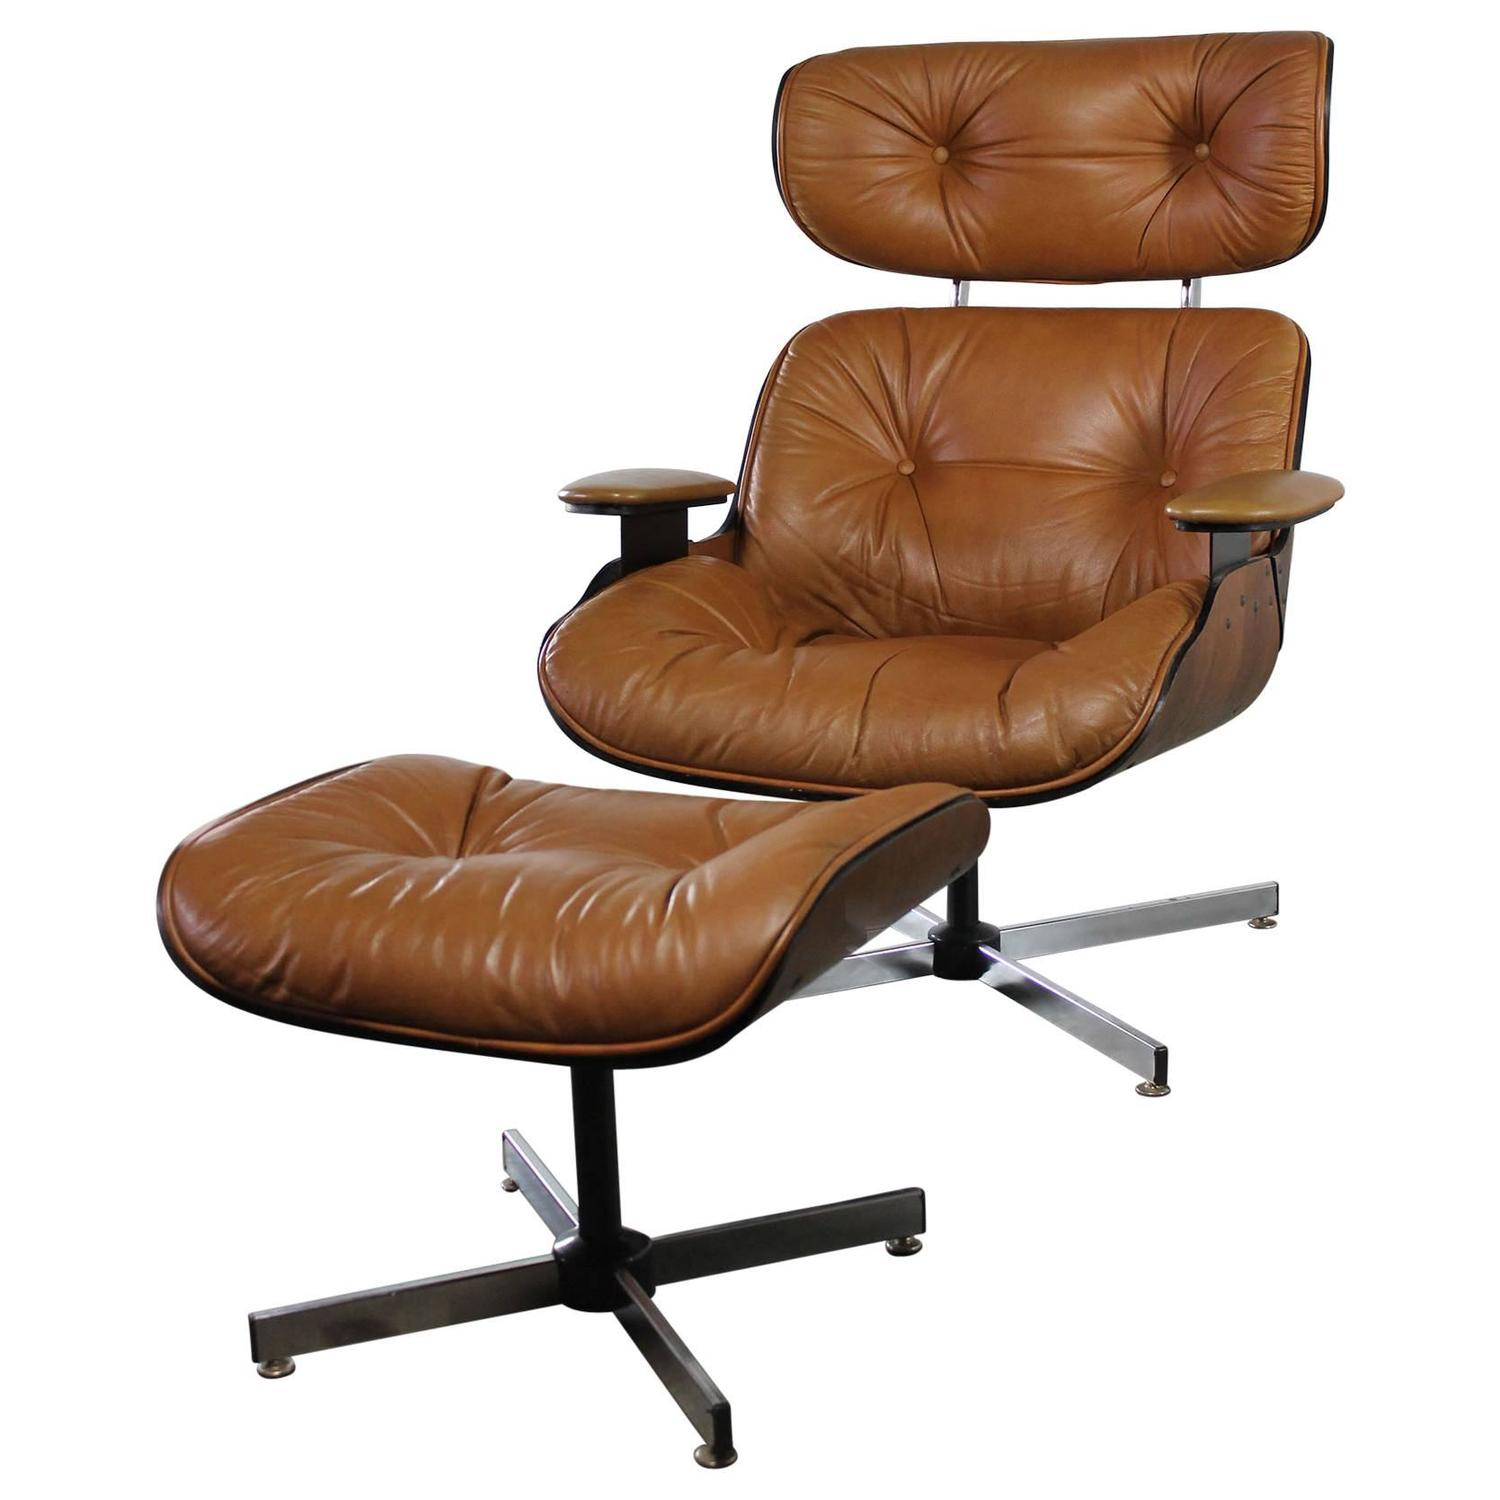 Lounge Chairs Mid Century Modern Plycraft Eames Style Lounge Chair And